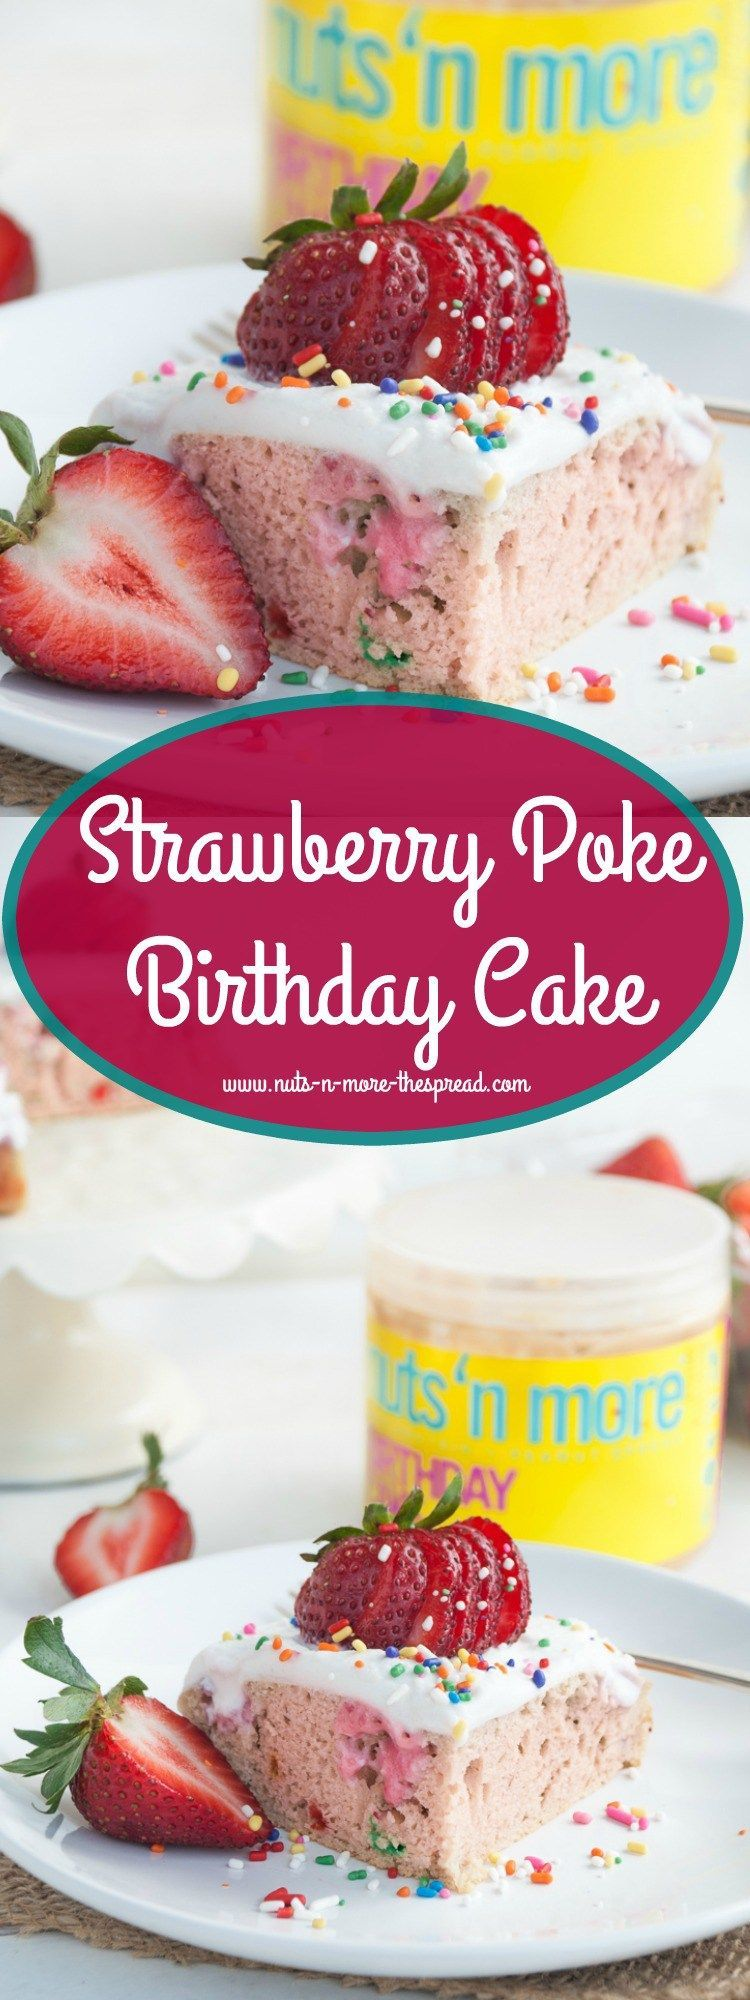 Strawberry Poke Birthday Cake Peanut Butter Cake #chocolatepeanutbutterpokecake Strawberry Poke Birthday Cake Peanut Butter Cake #chocolatepeanutbutterpokecake